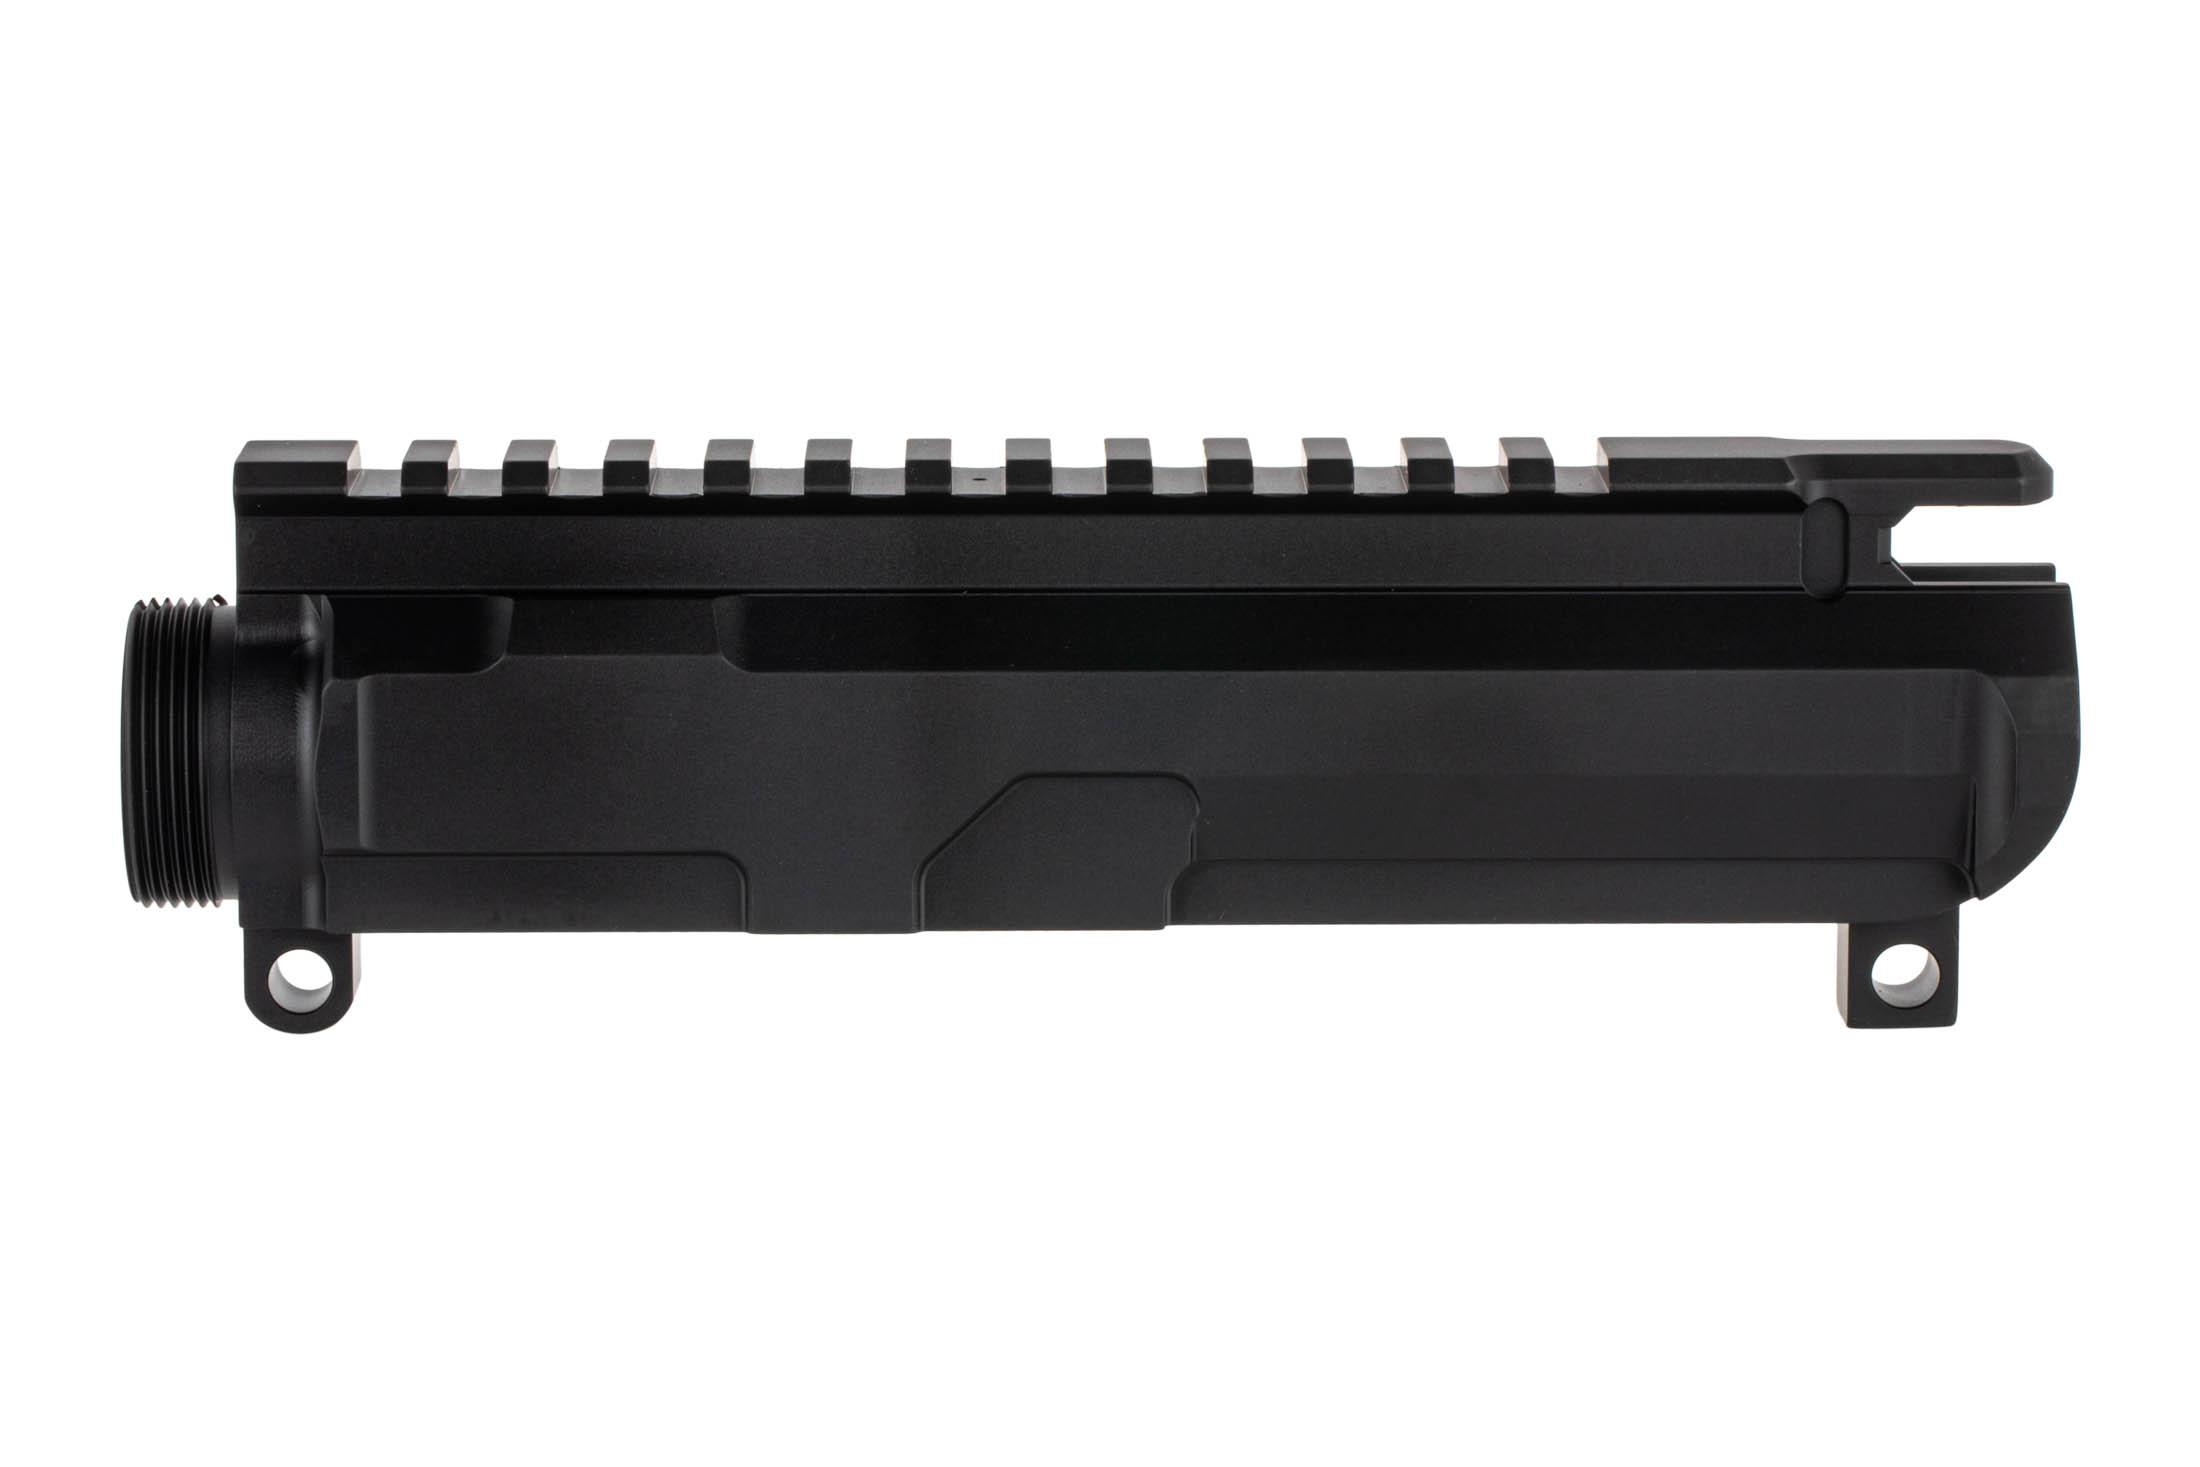 The Centurion Arms C4 AR15 Billet upper receiver is hardcoat anodized black